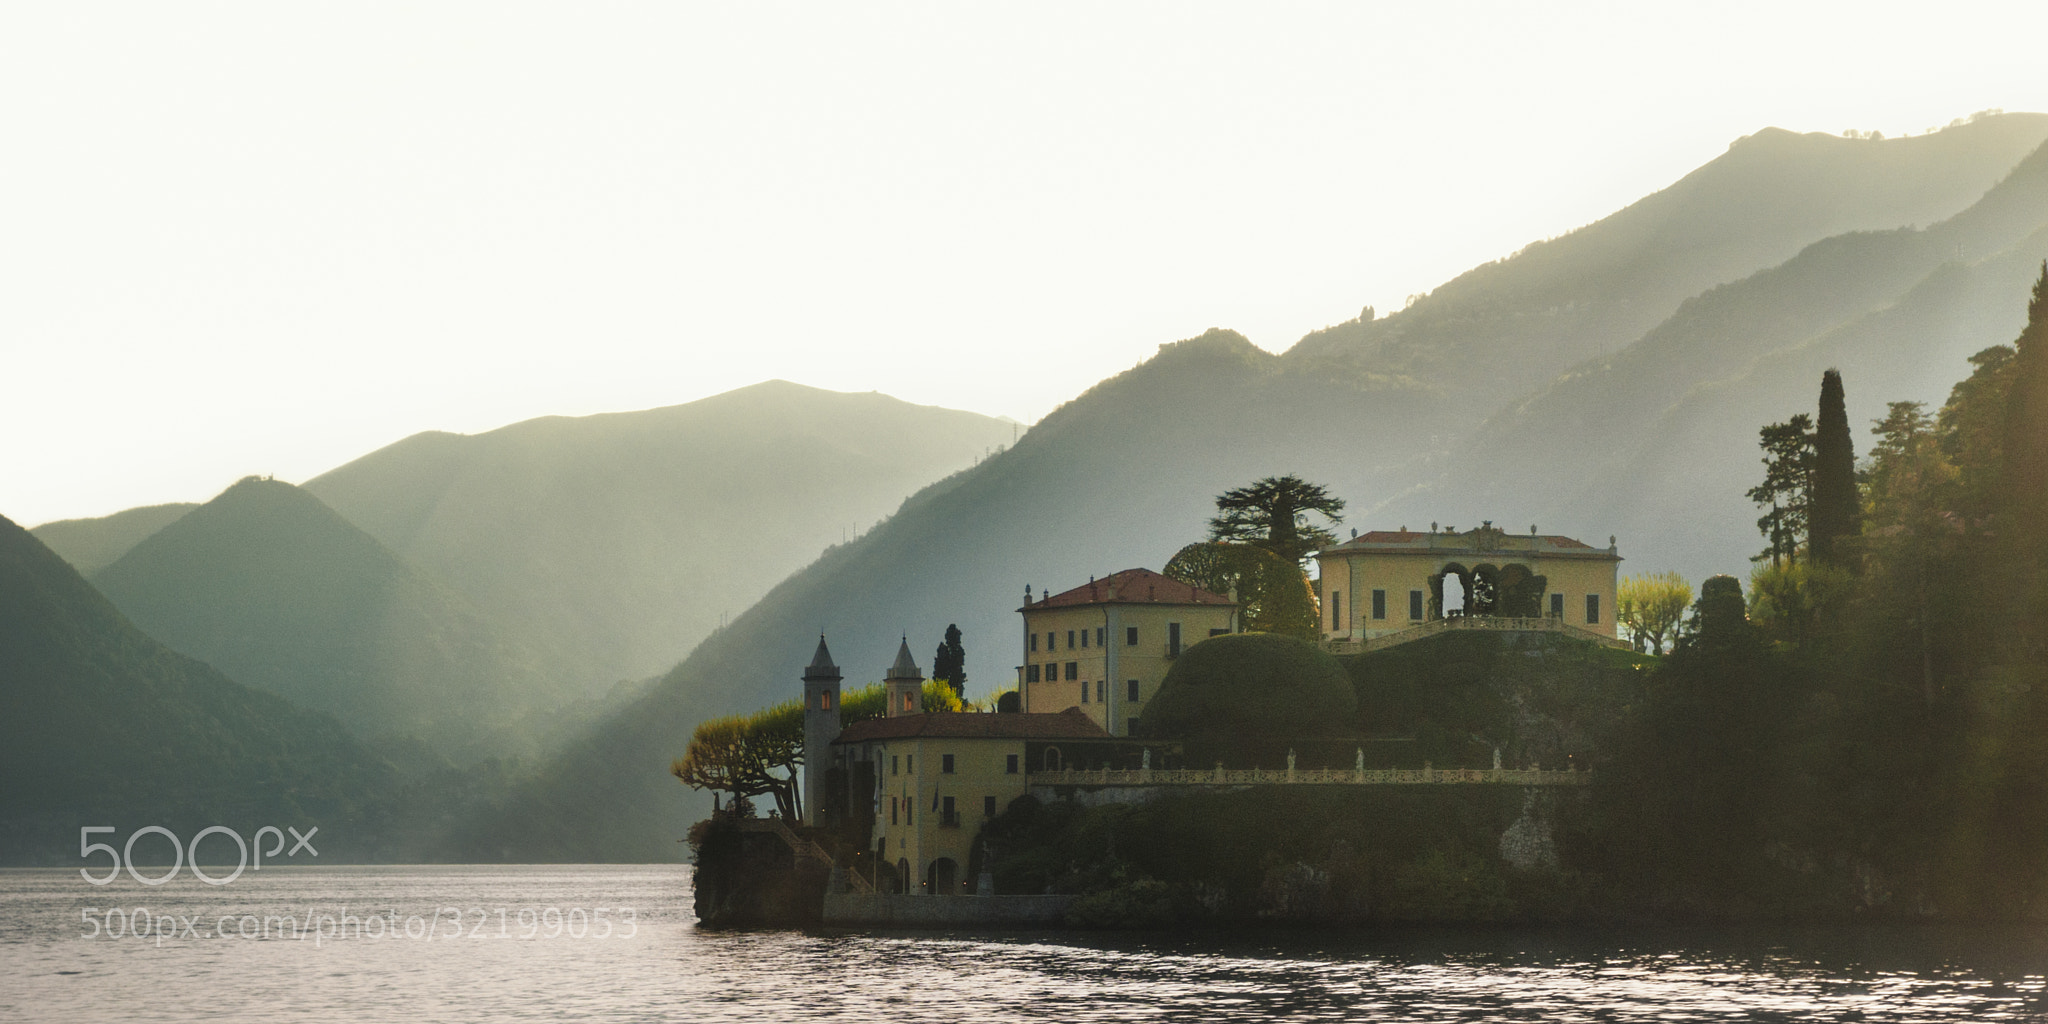 Photograph The Mansion on the Lake (Lago di Como, Italy) by James Clear on 500px